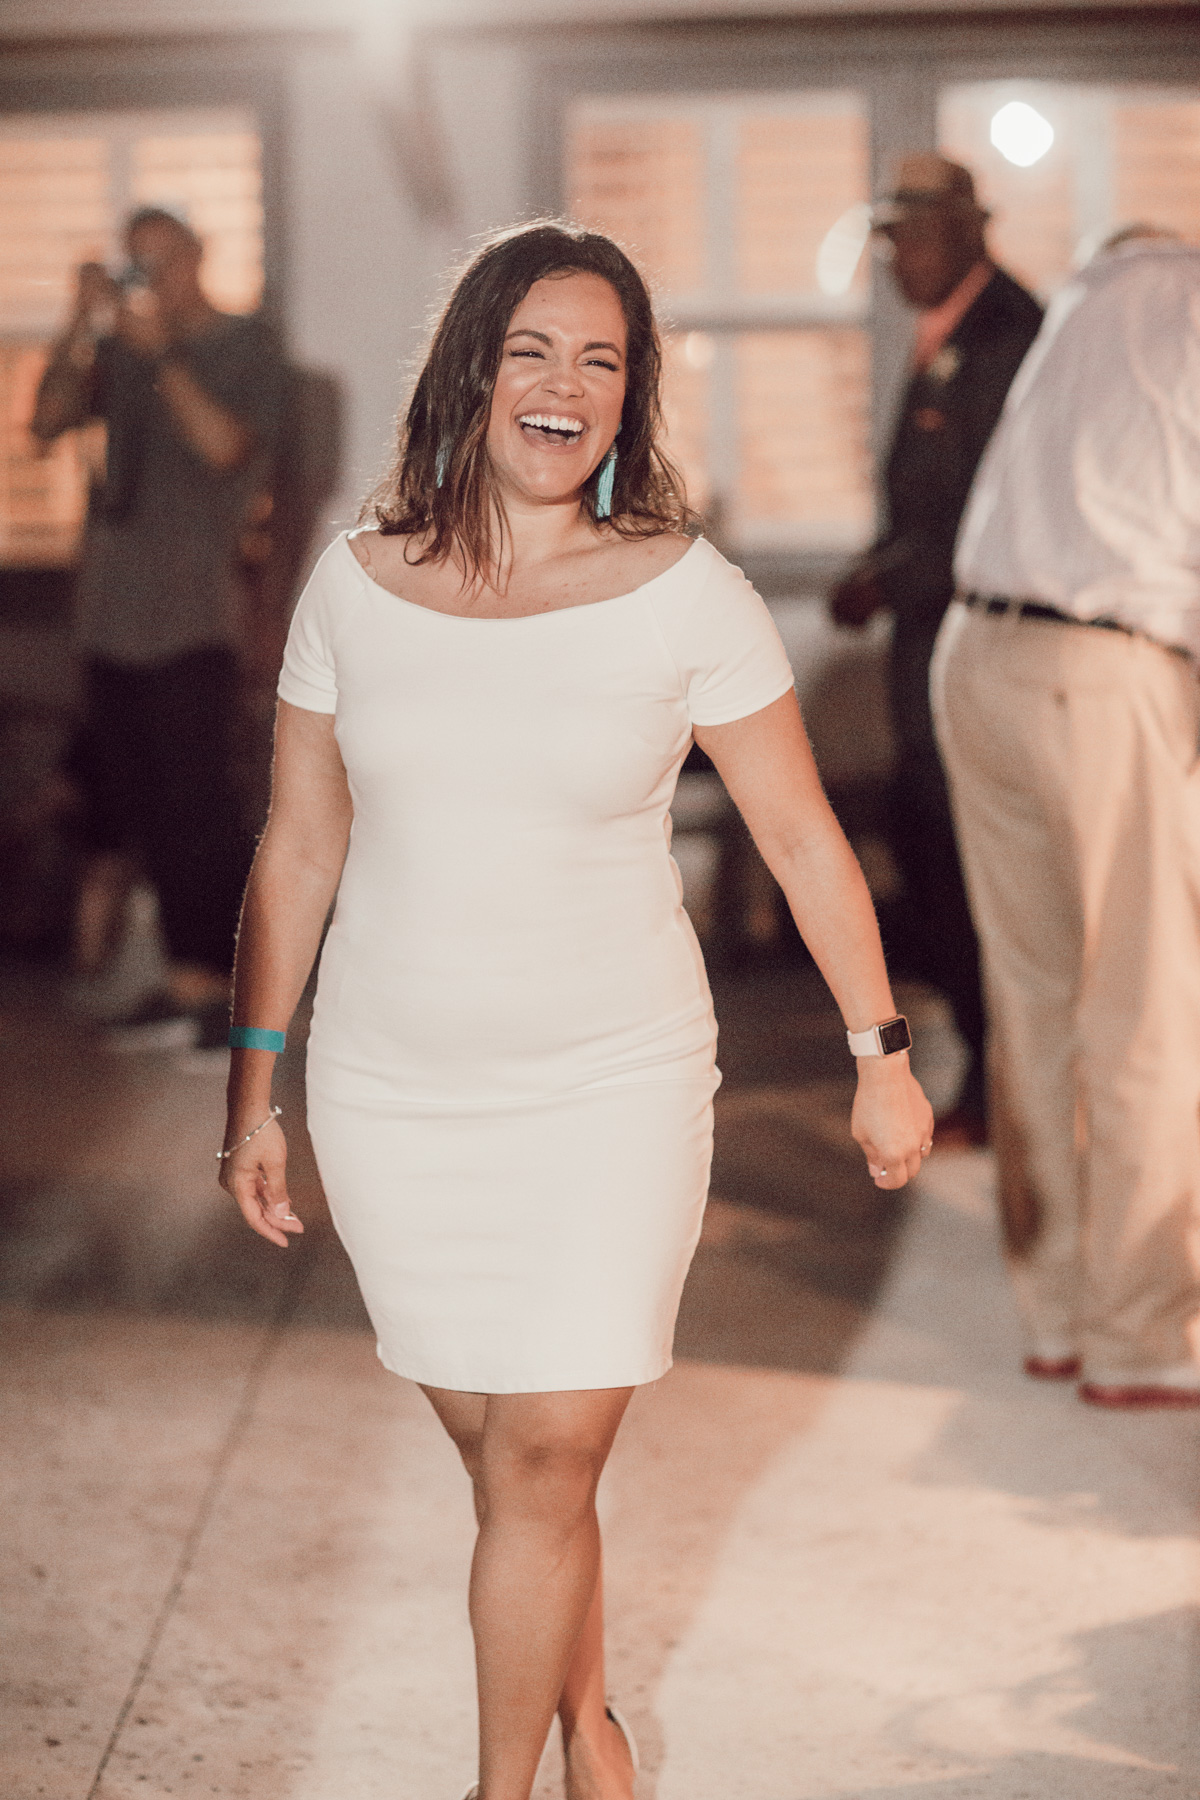 pretty woman in white dress laughing